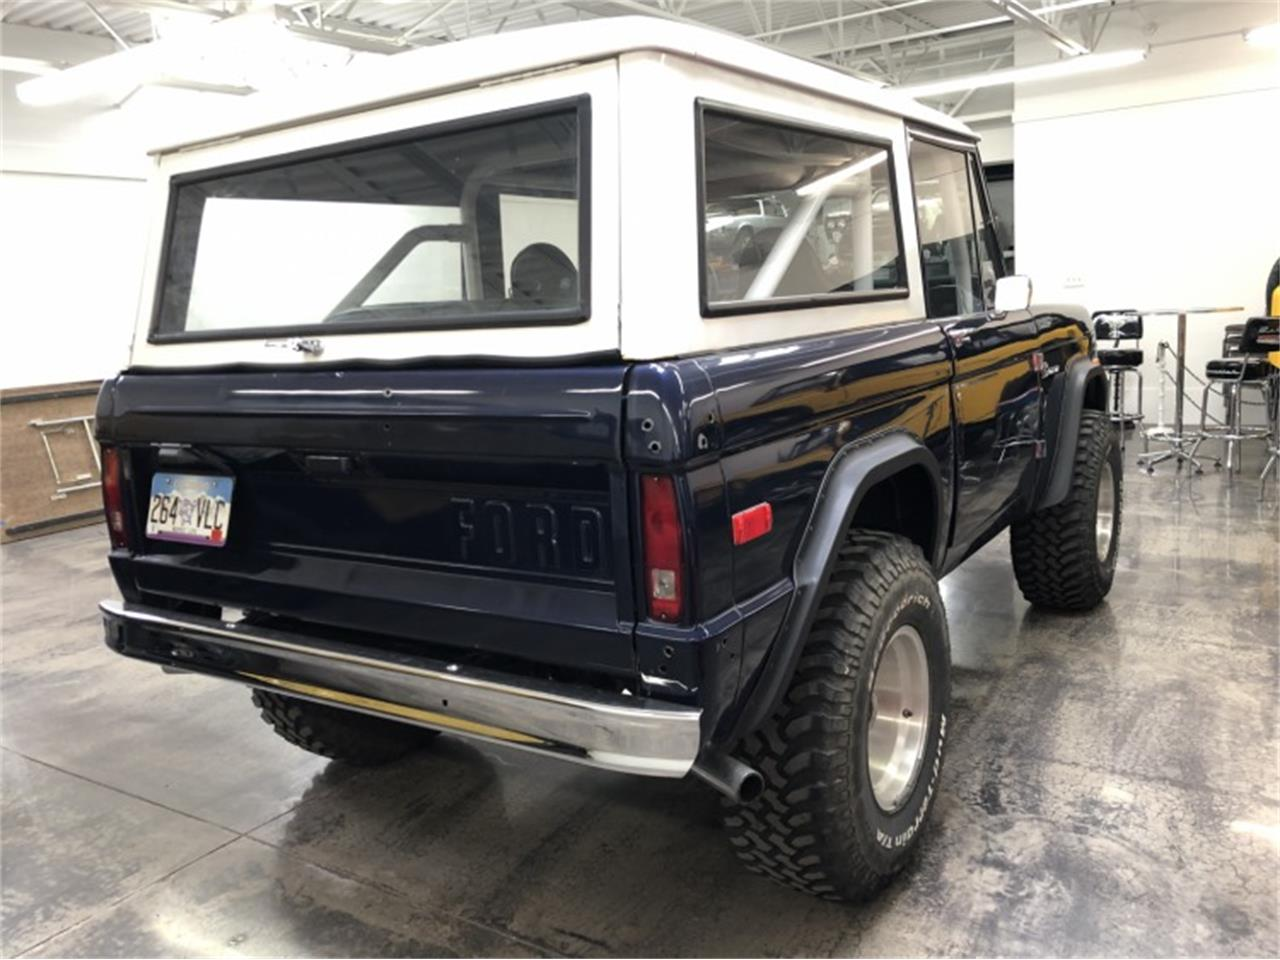 Large Picture of '71 Bronco located in Sparks Nevada Auction Vehicle Offered by Motorsport Auction Group - QNQD